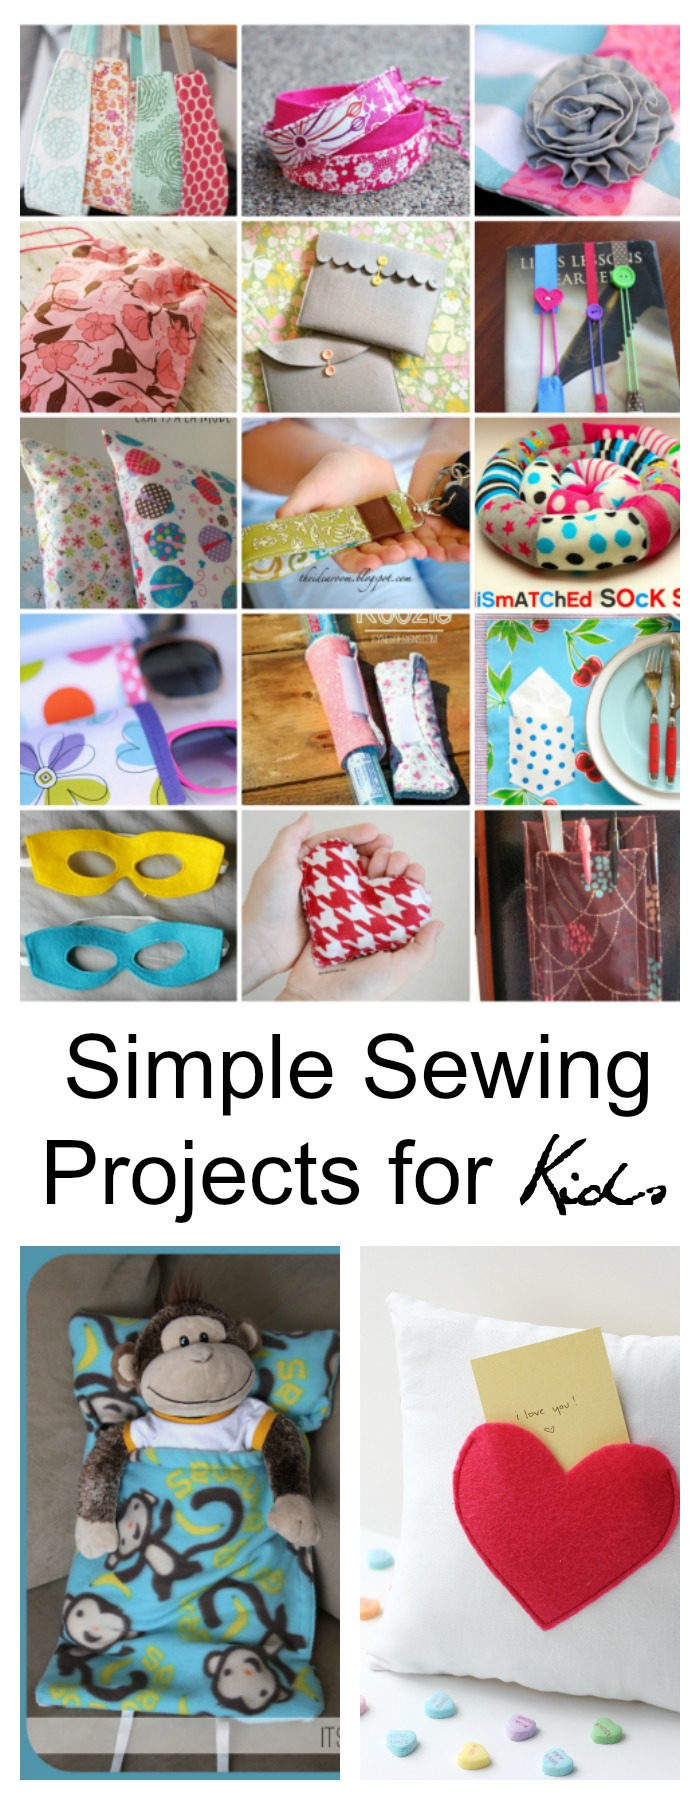 Simple Sewing Projects for Kids - The Idea Room